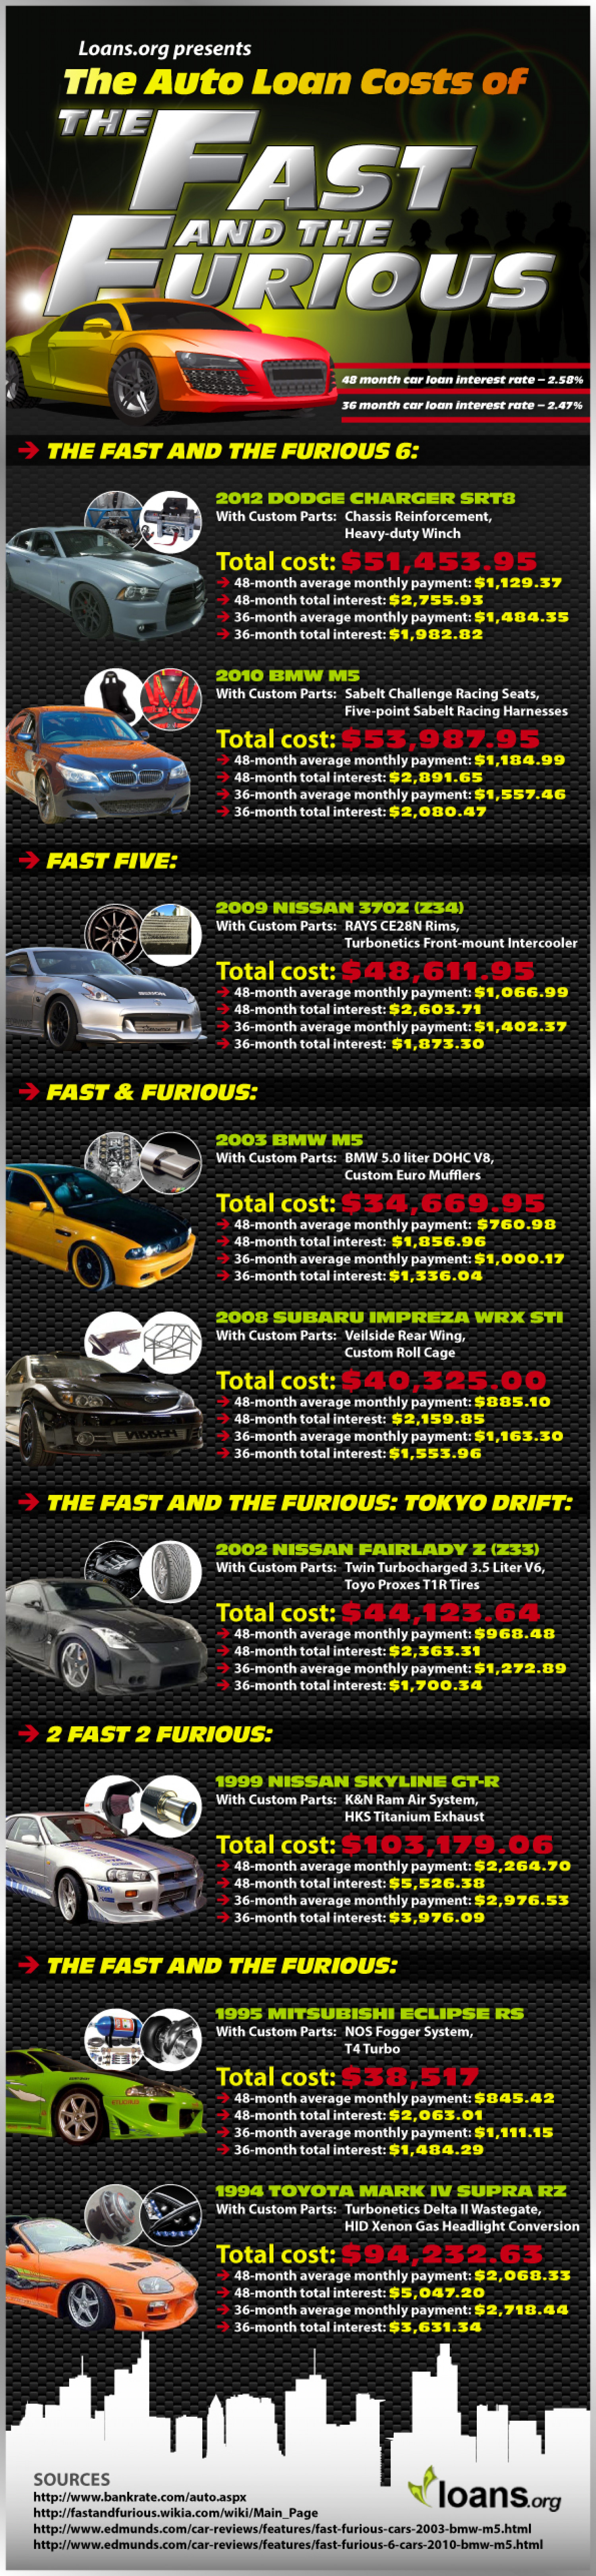 The Auto Loan Costs of The Fast and the Furious Infographic